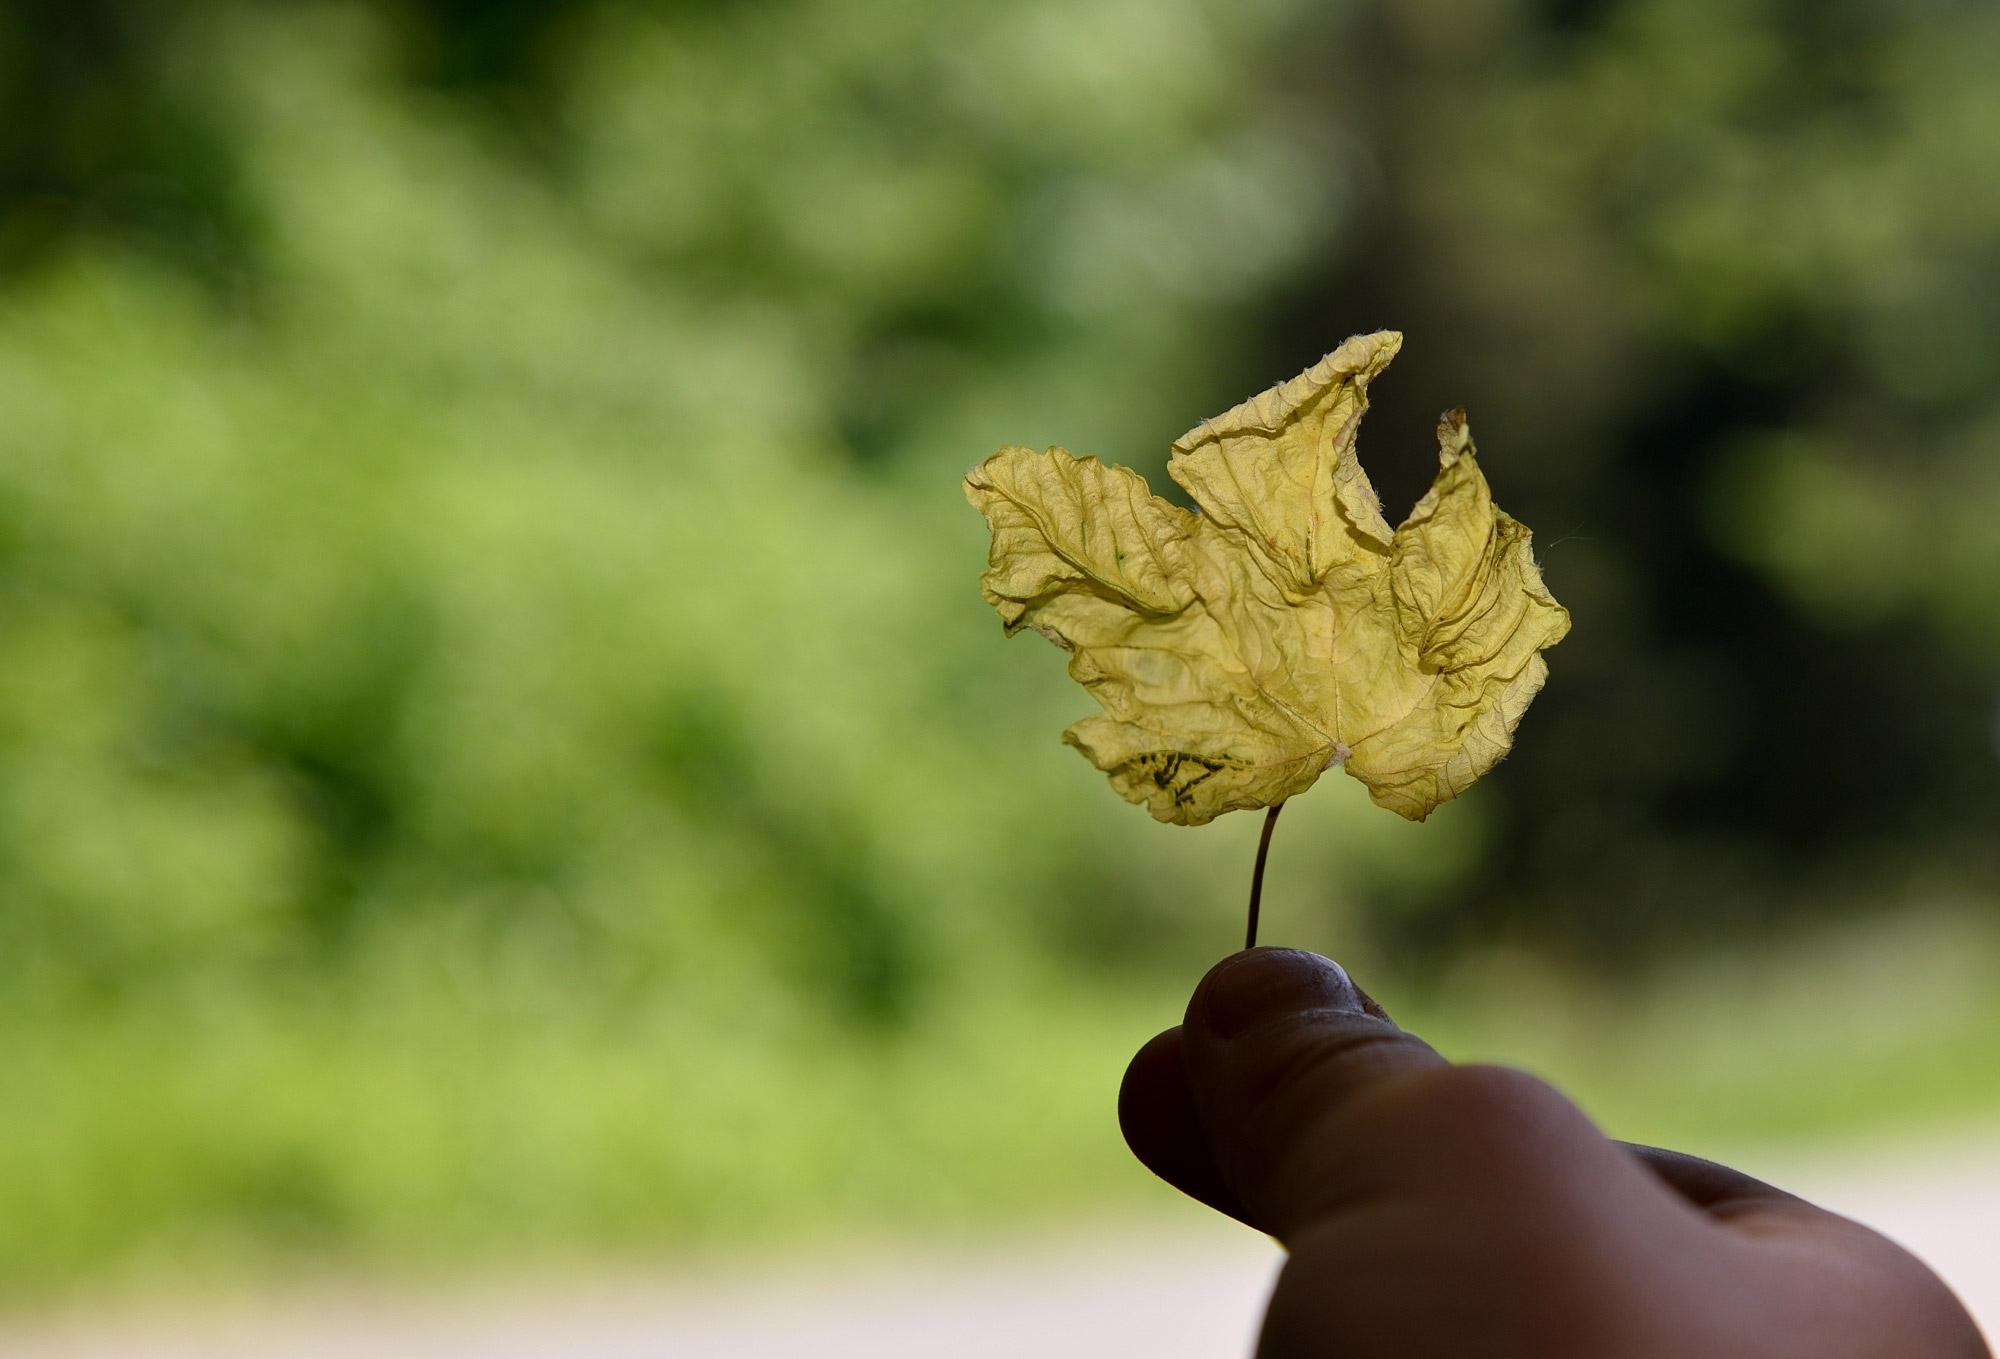 Leaves, leaving a green Earth for future generations